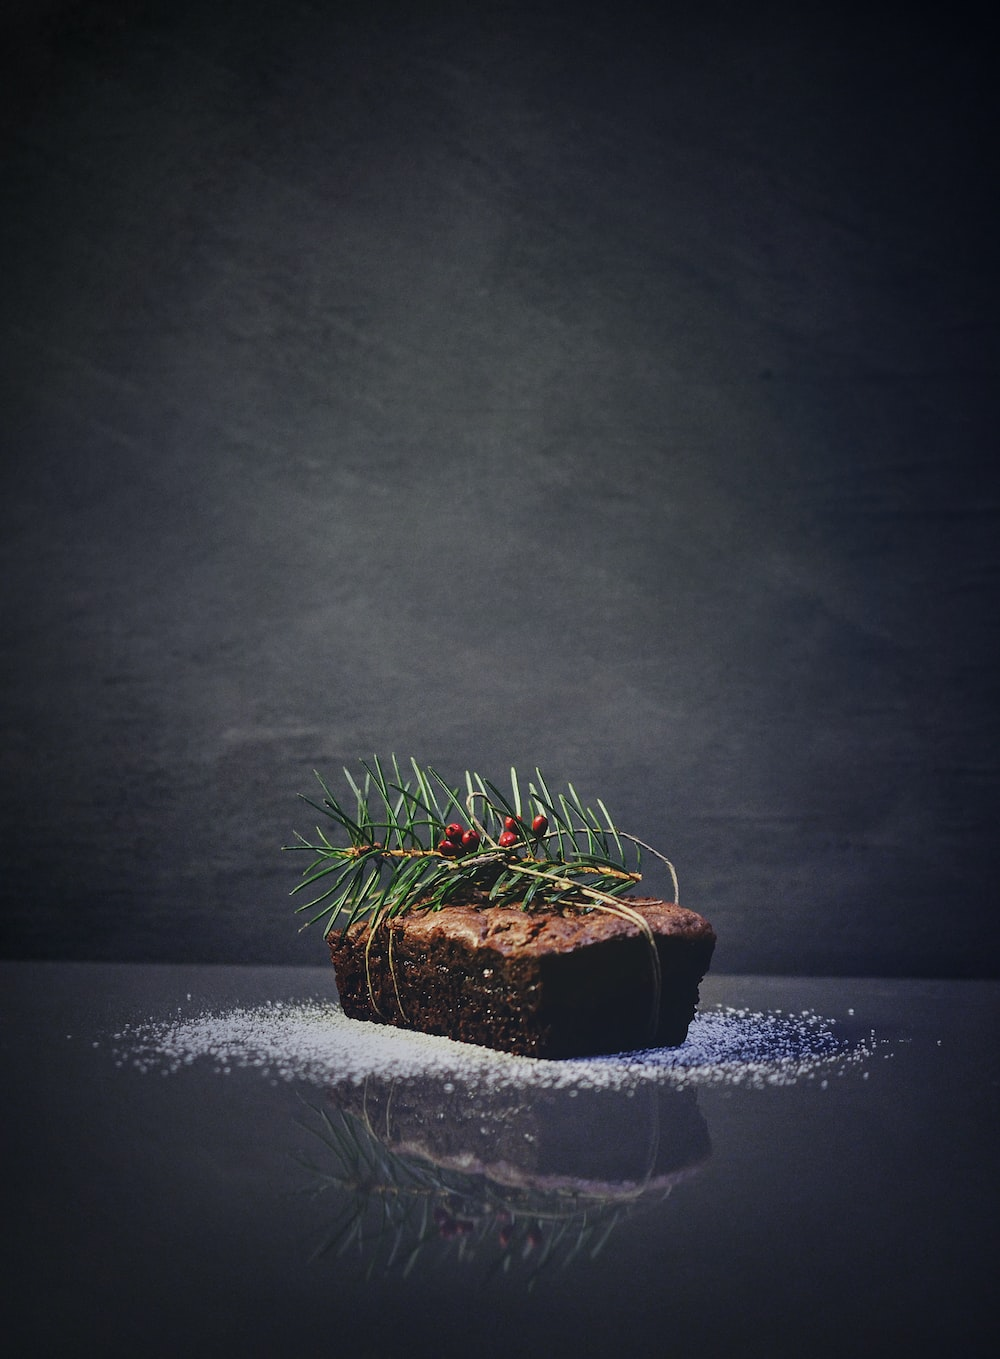 green plants on baked bread